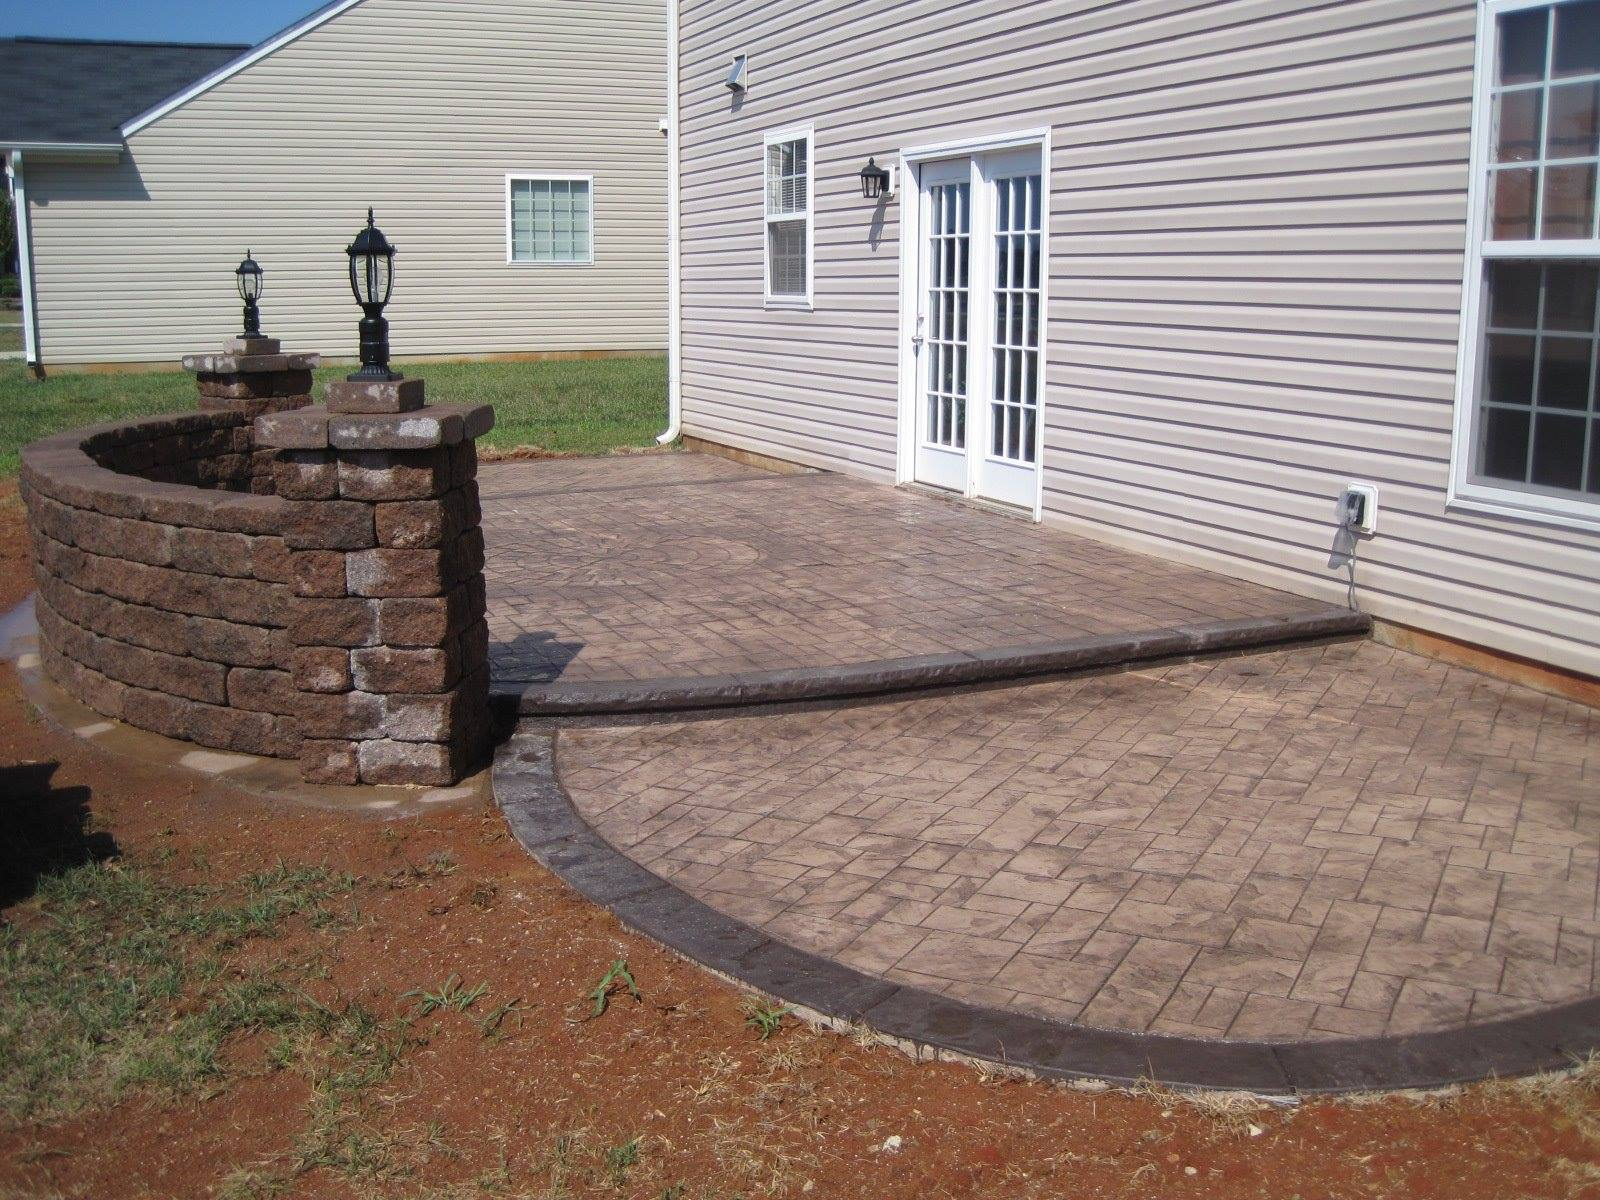 Patio & Grilling Area - Pavers Express on Patio Grilling Area id=48760